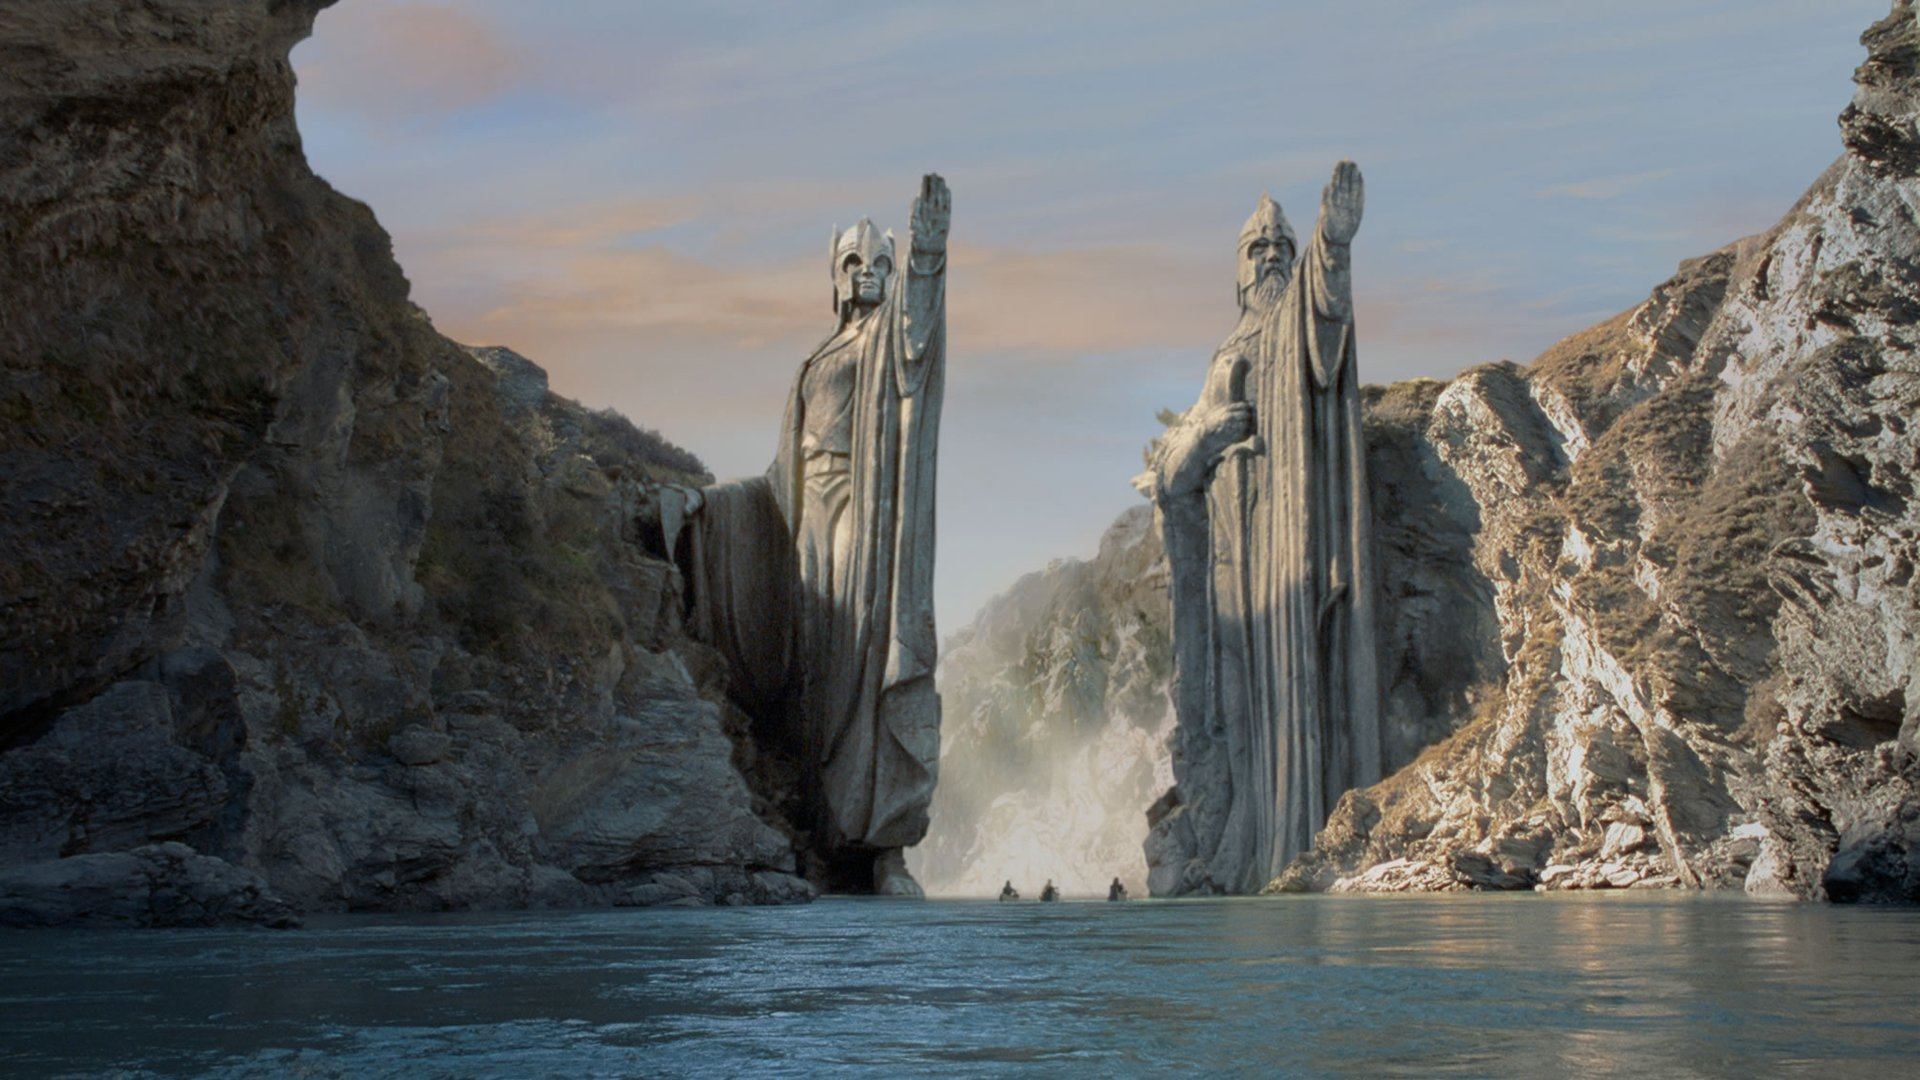 The Lord of the Rings (NZ 2001-2003; Peter Jackson)